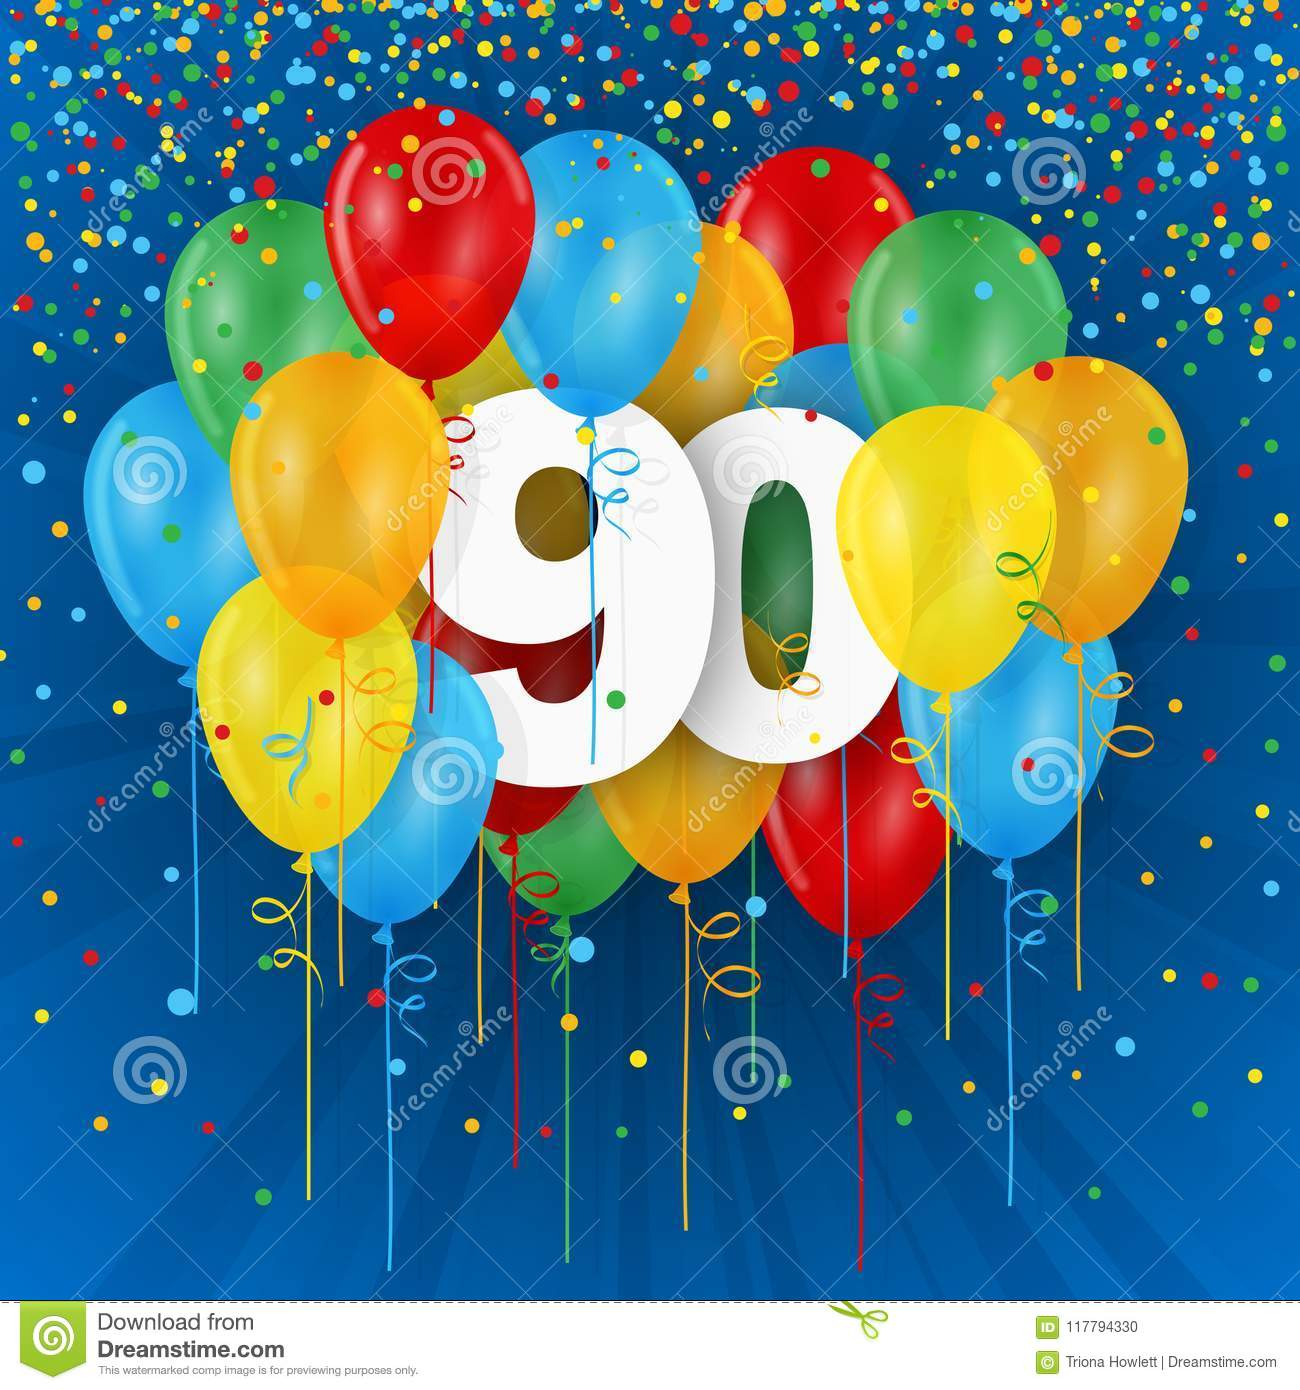 Happy 90th Birthday Anniversary Card With Balloons